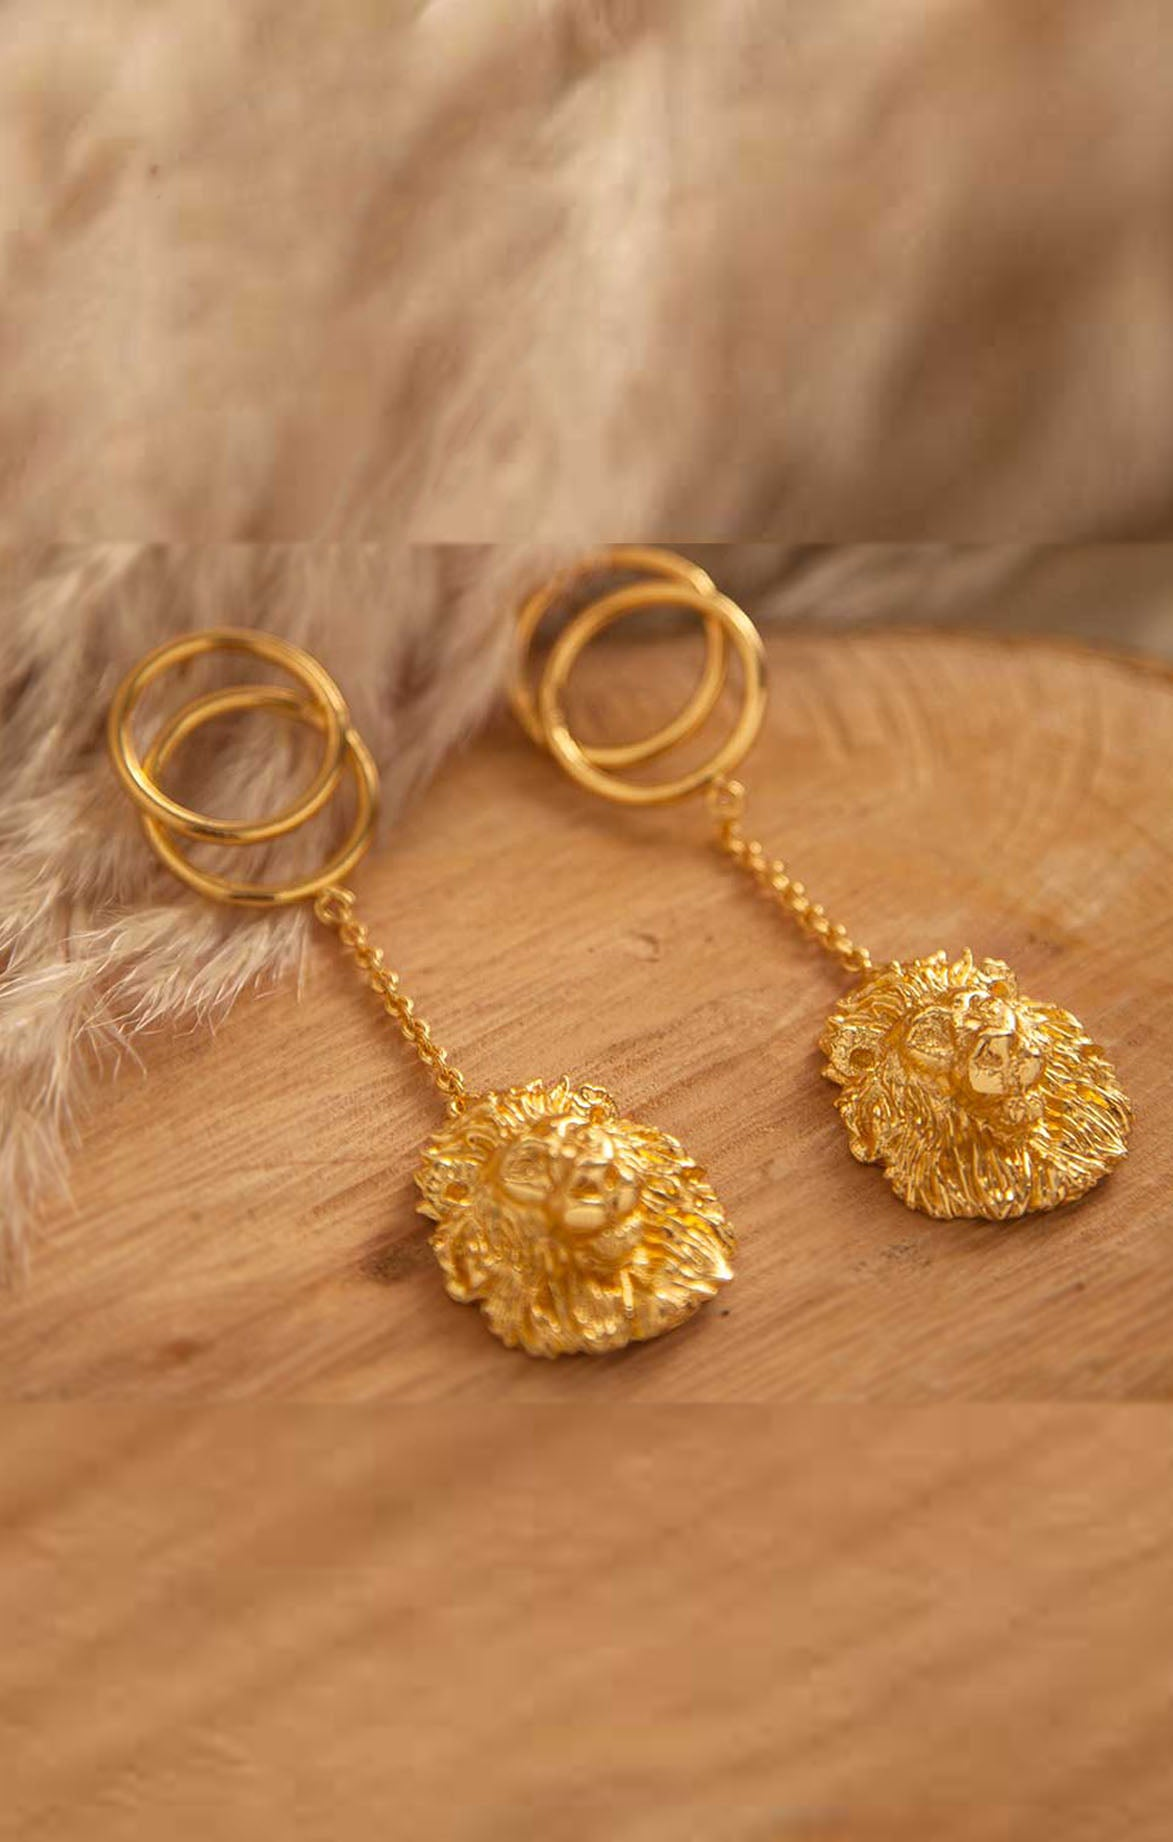 Forzudos Earrings